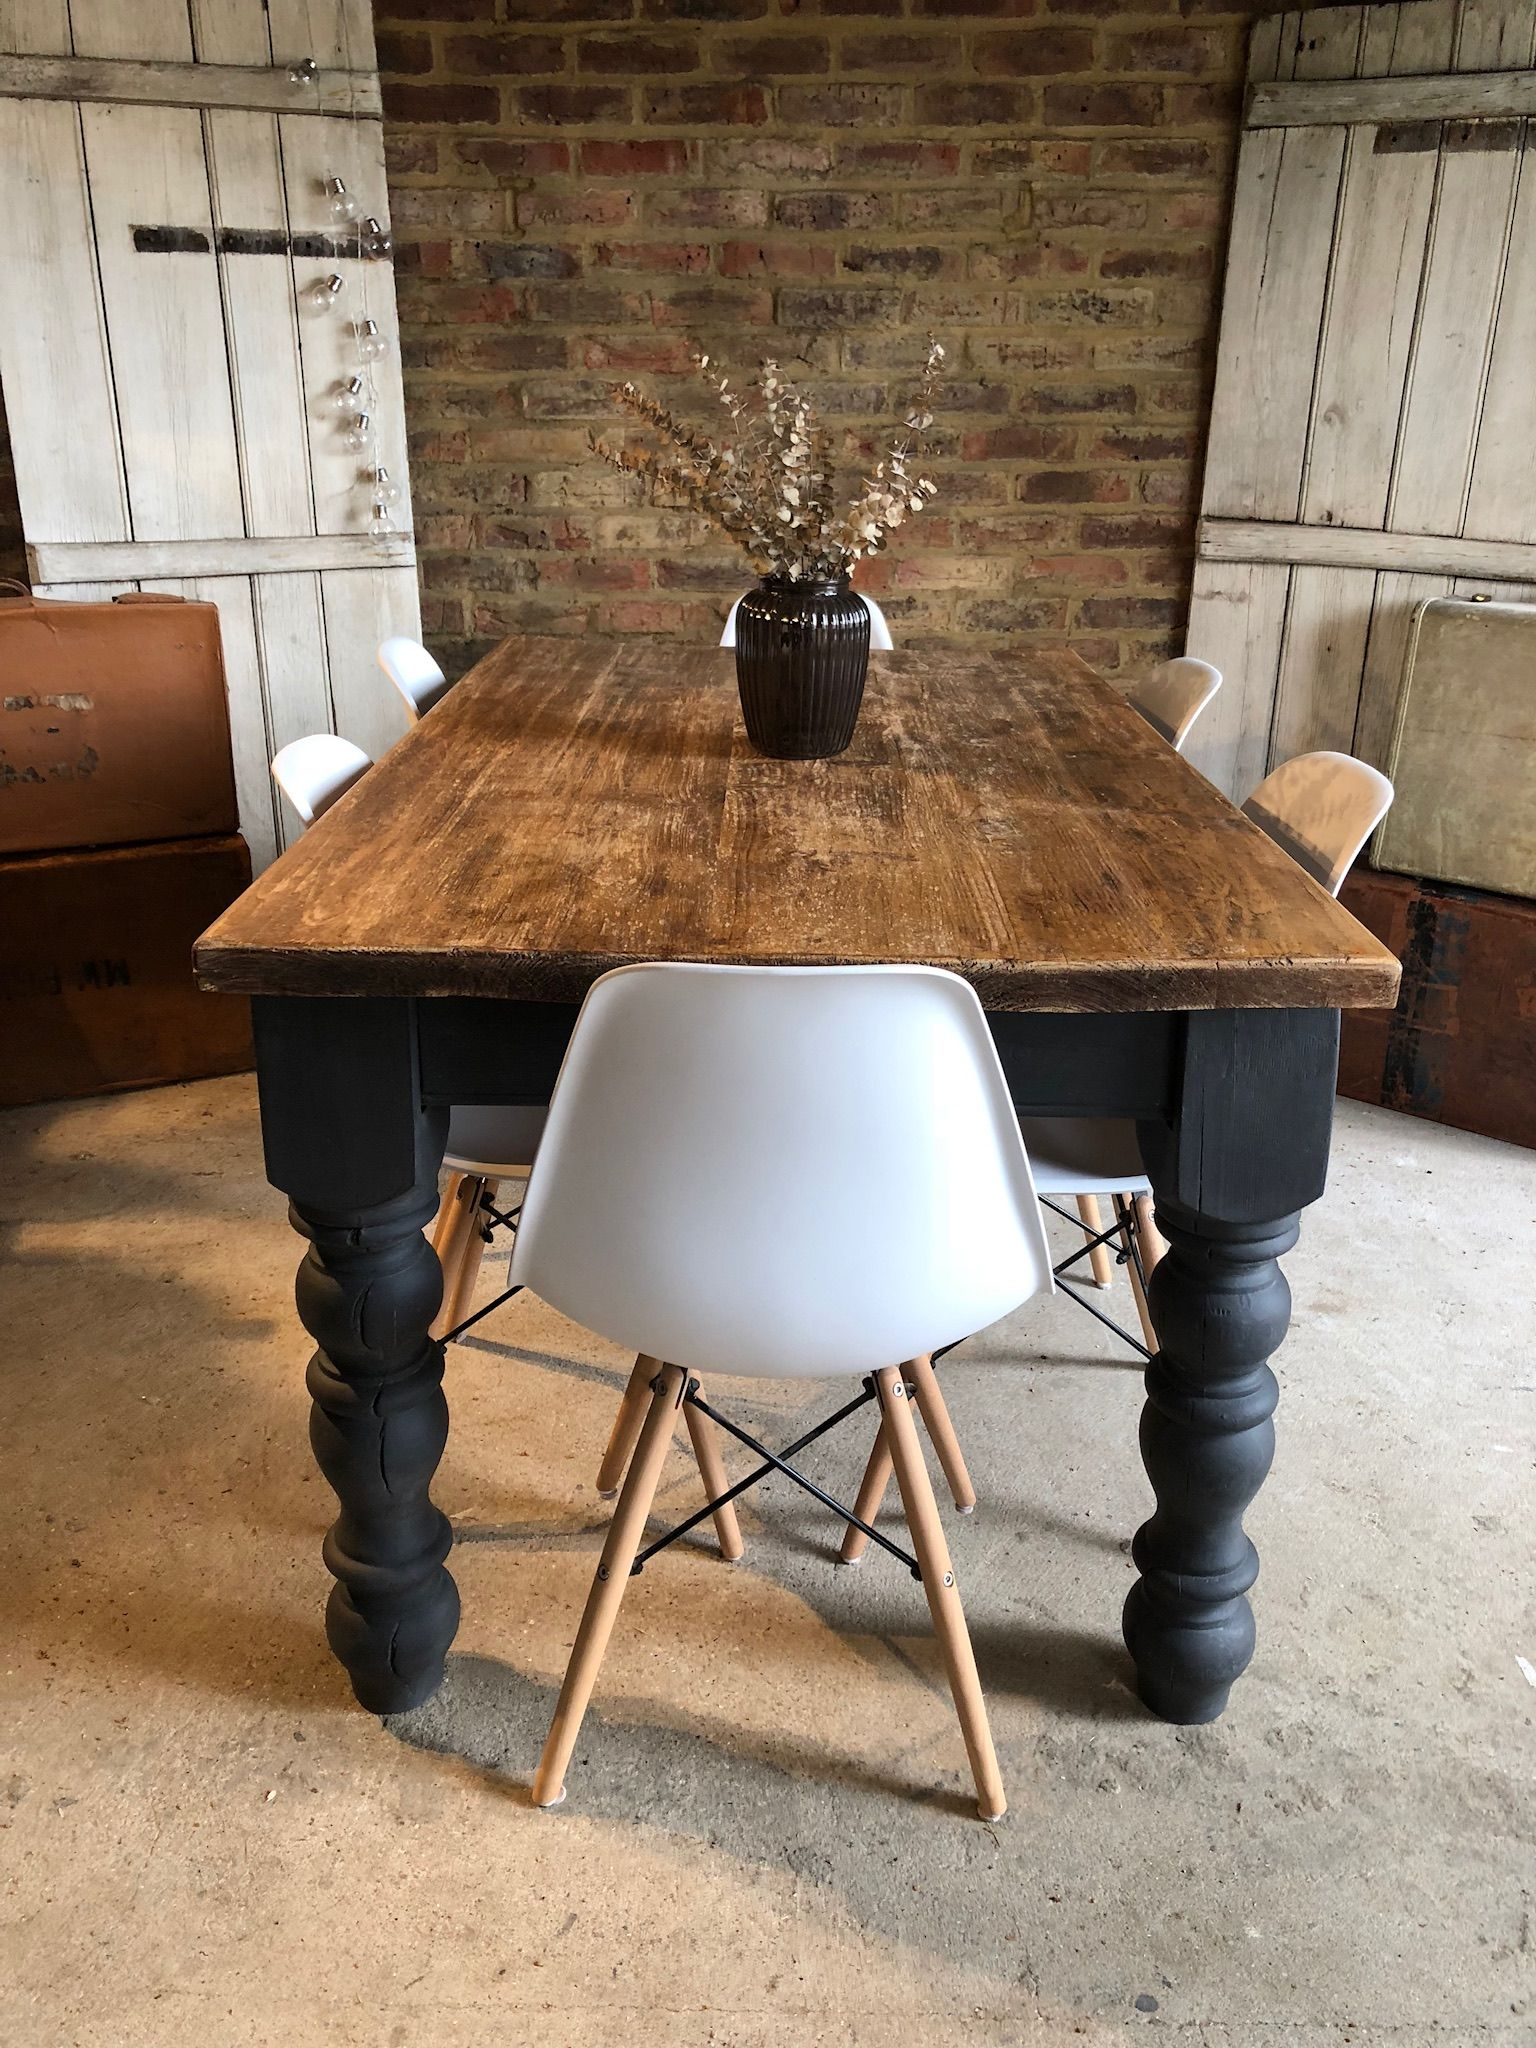 Rustic Old Farmhouse Table In Annie Sloan Custom Mix Of Graphite